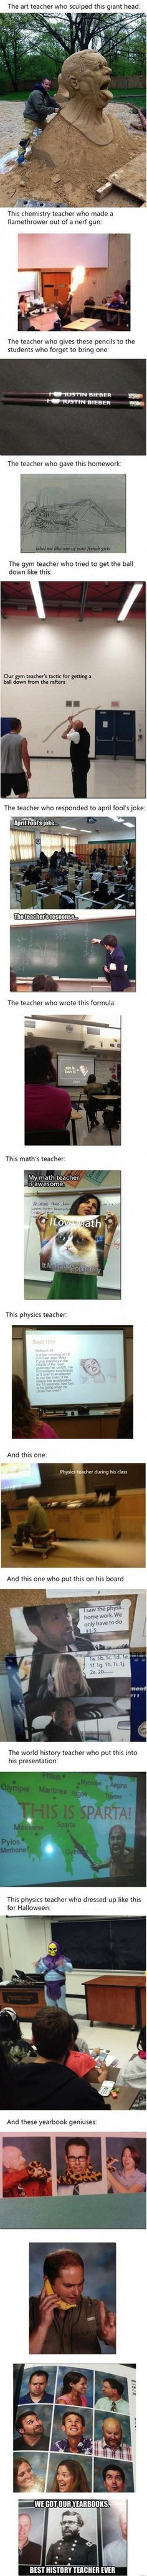 Tickld Mobile - 17 Teachers That Went The Extra Mile. Number 7 Is Pure Gold.